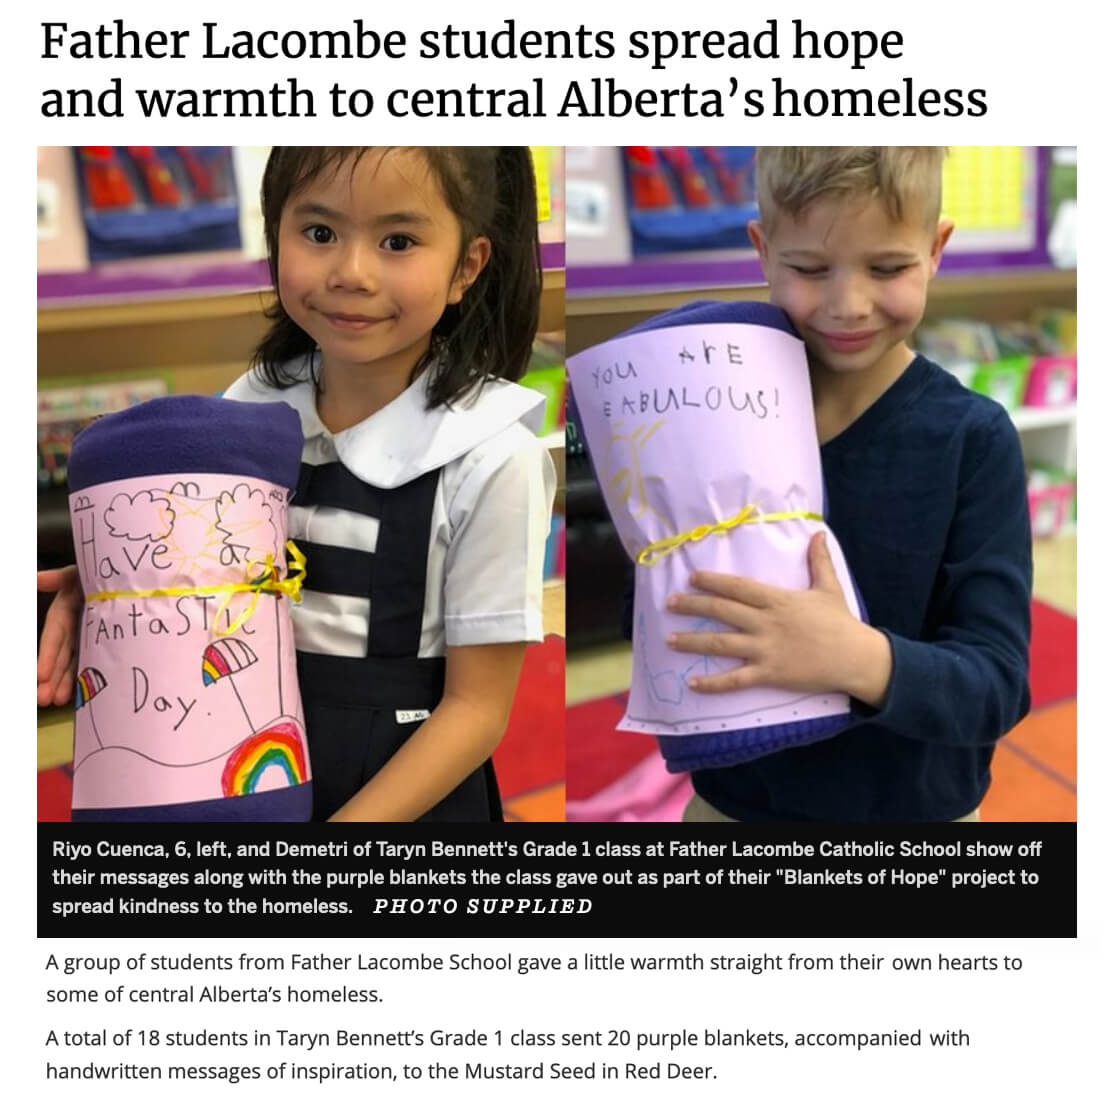 Father Lacombe Blankets for Hope